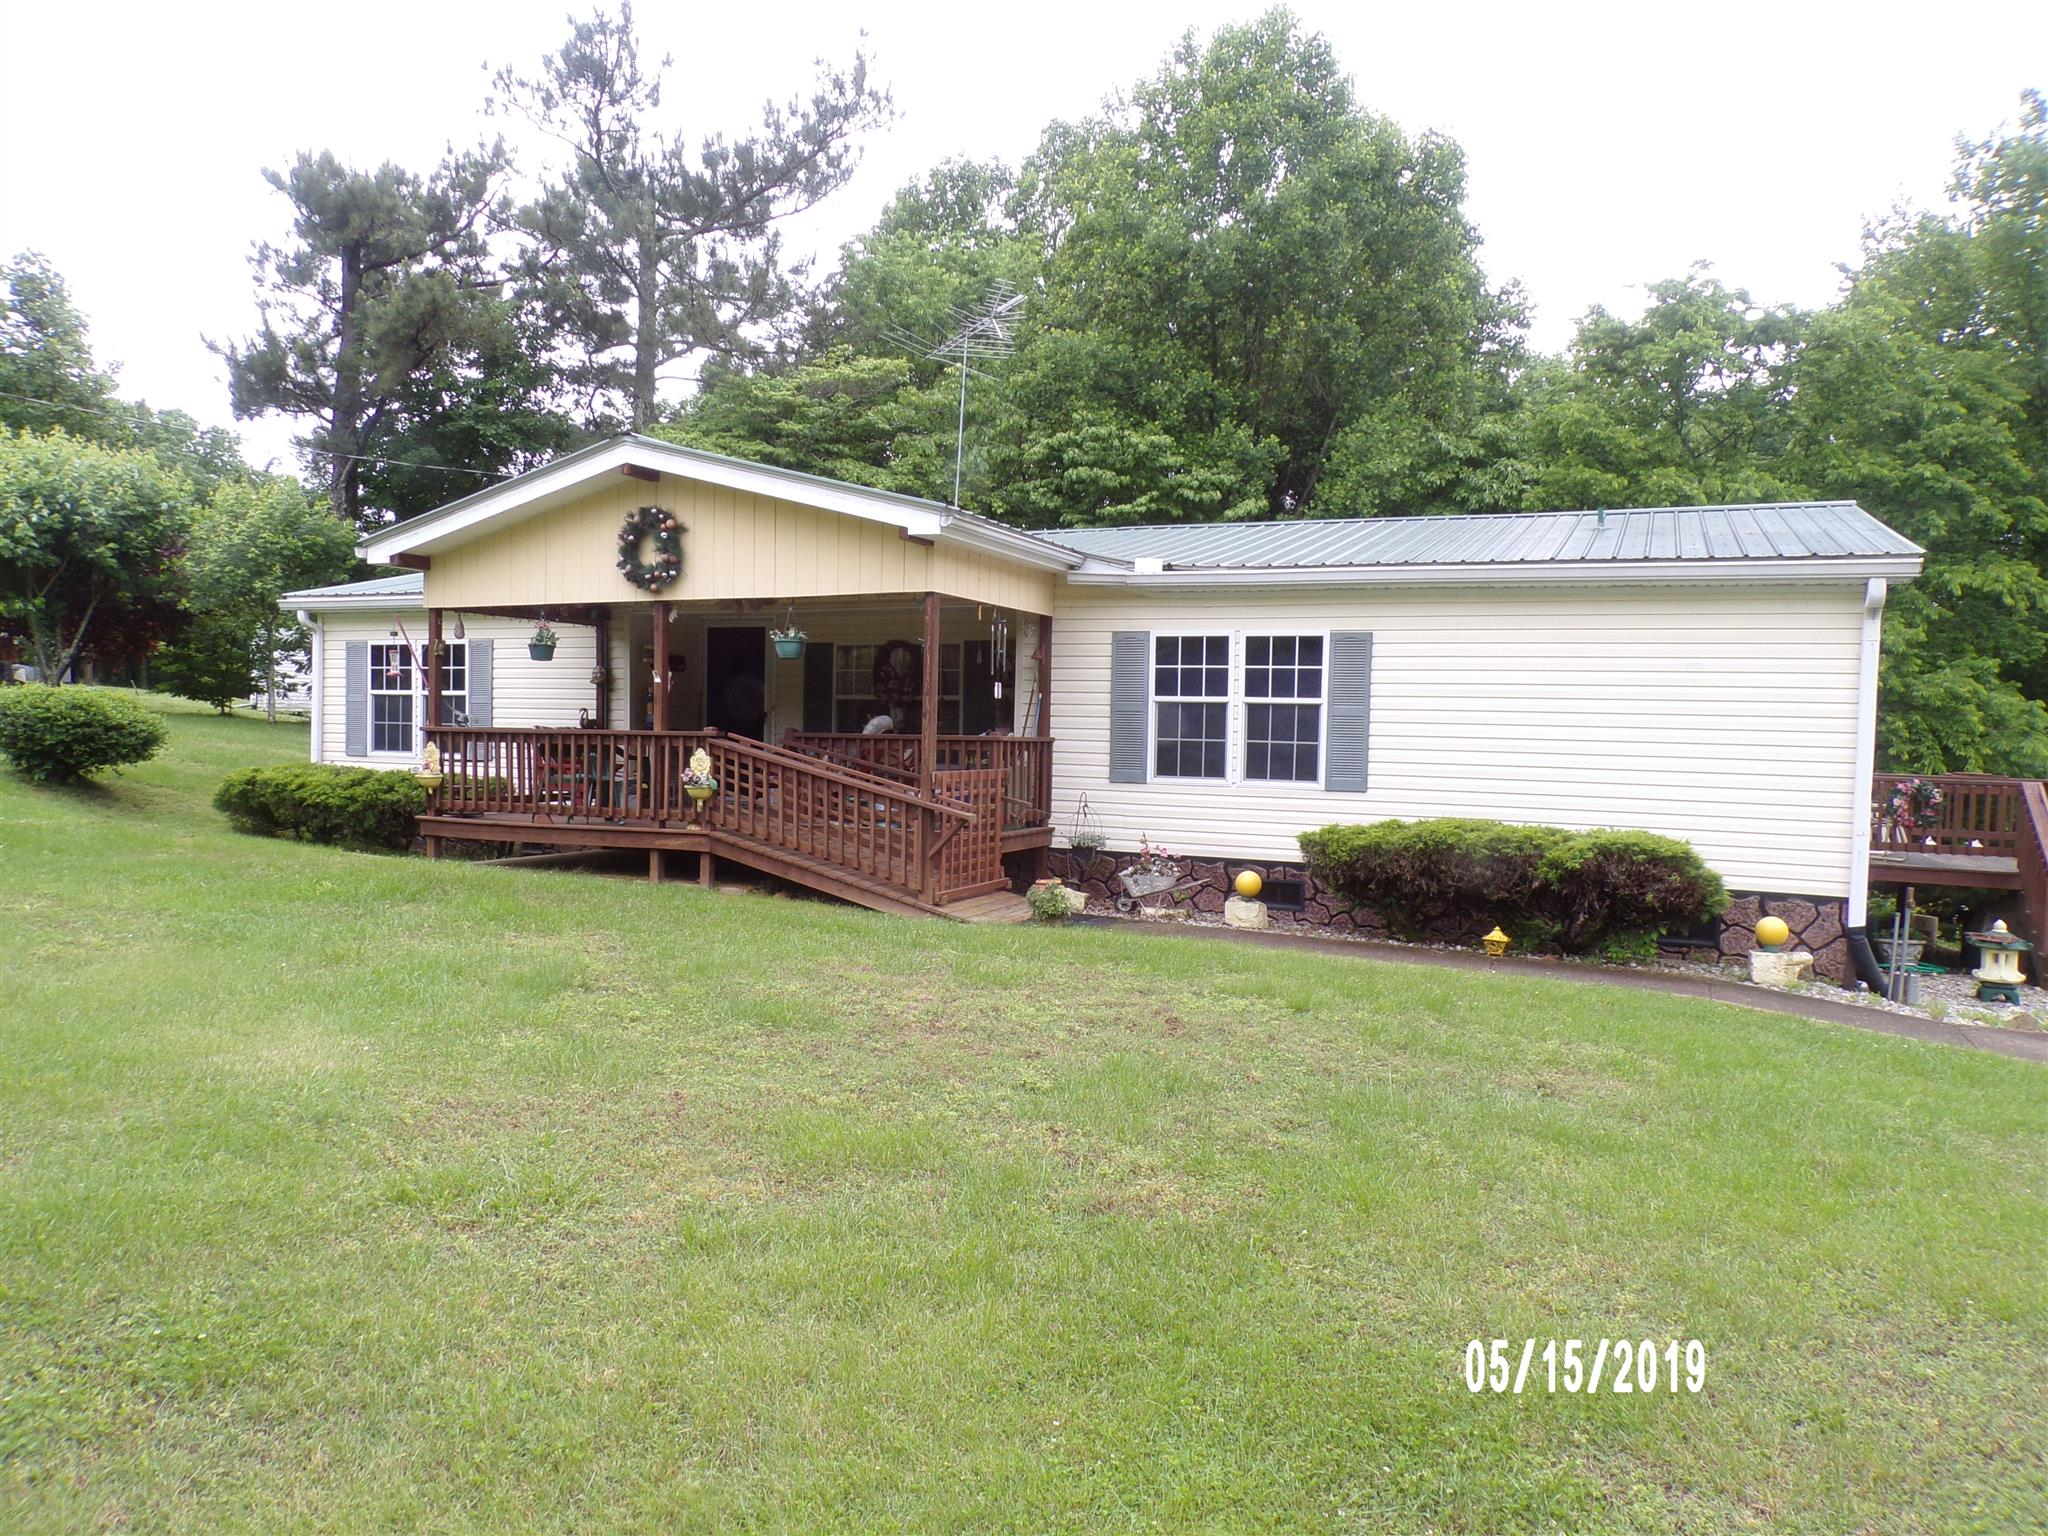 3941 Akin Ridge Rd, Williamsport, TN 38487 - Williamsport, TN real estate listing